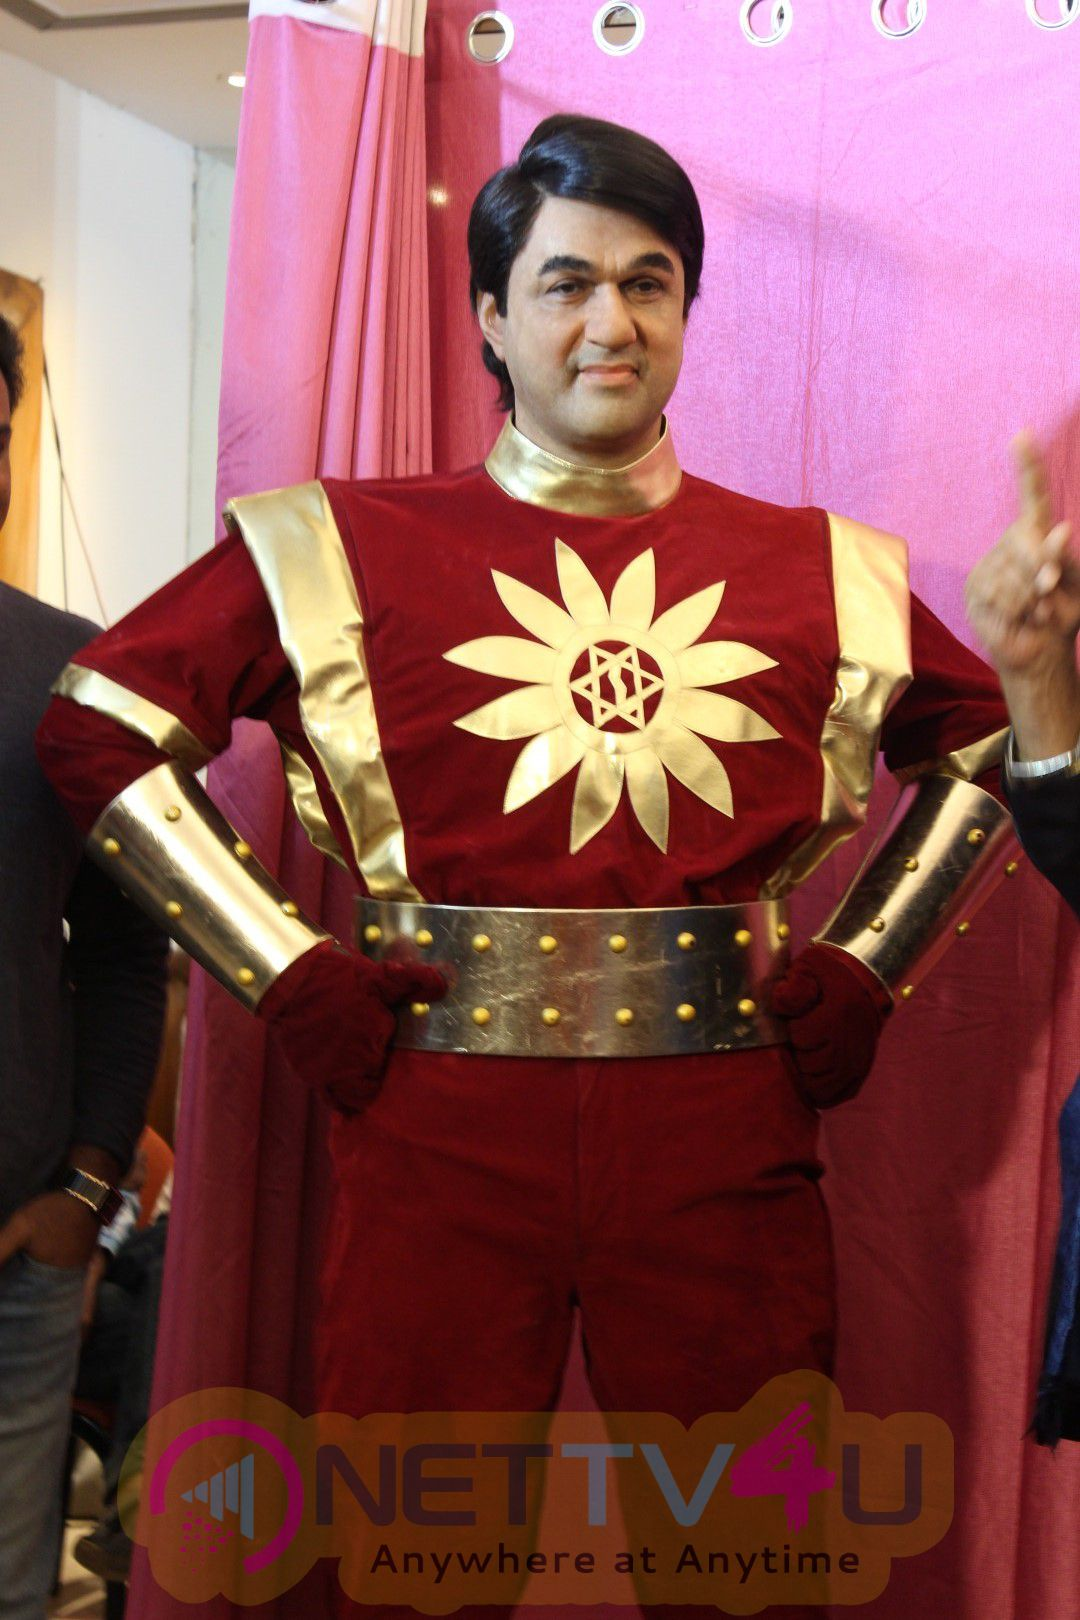 Excellent Photos Of Mukhesh Khanna Will Inaugurate His Website Shaktiman Wax Statue